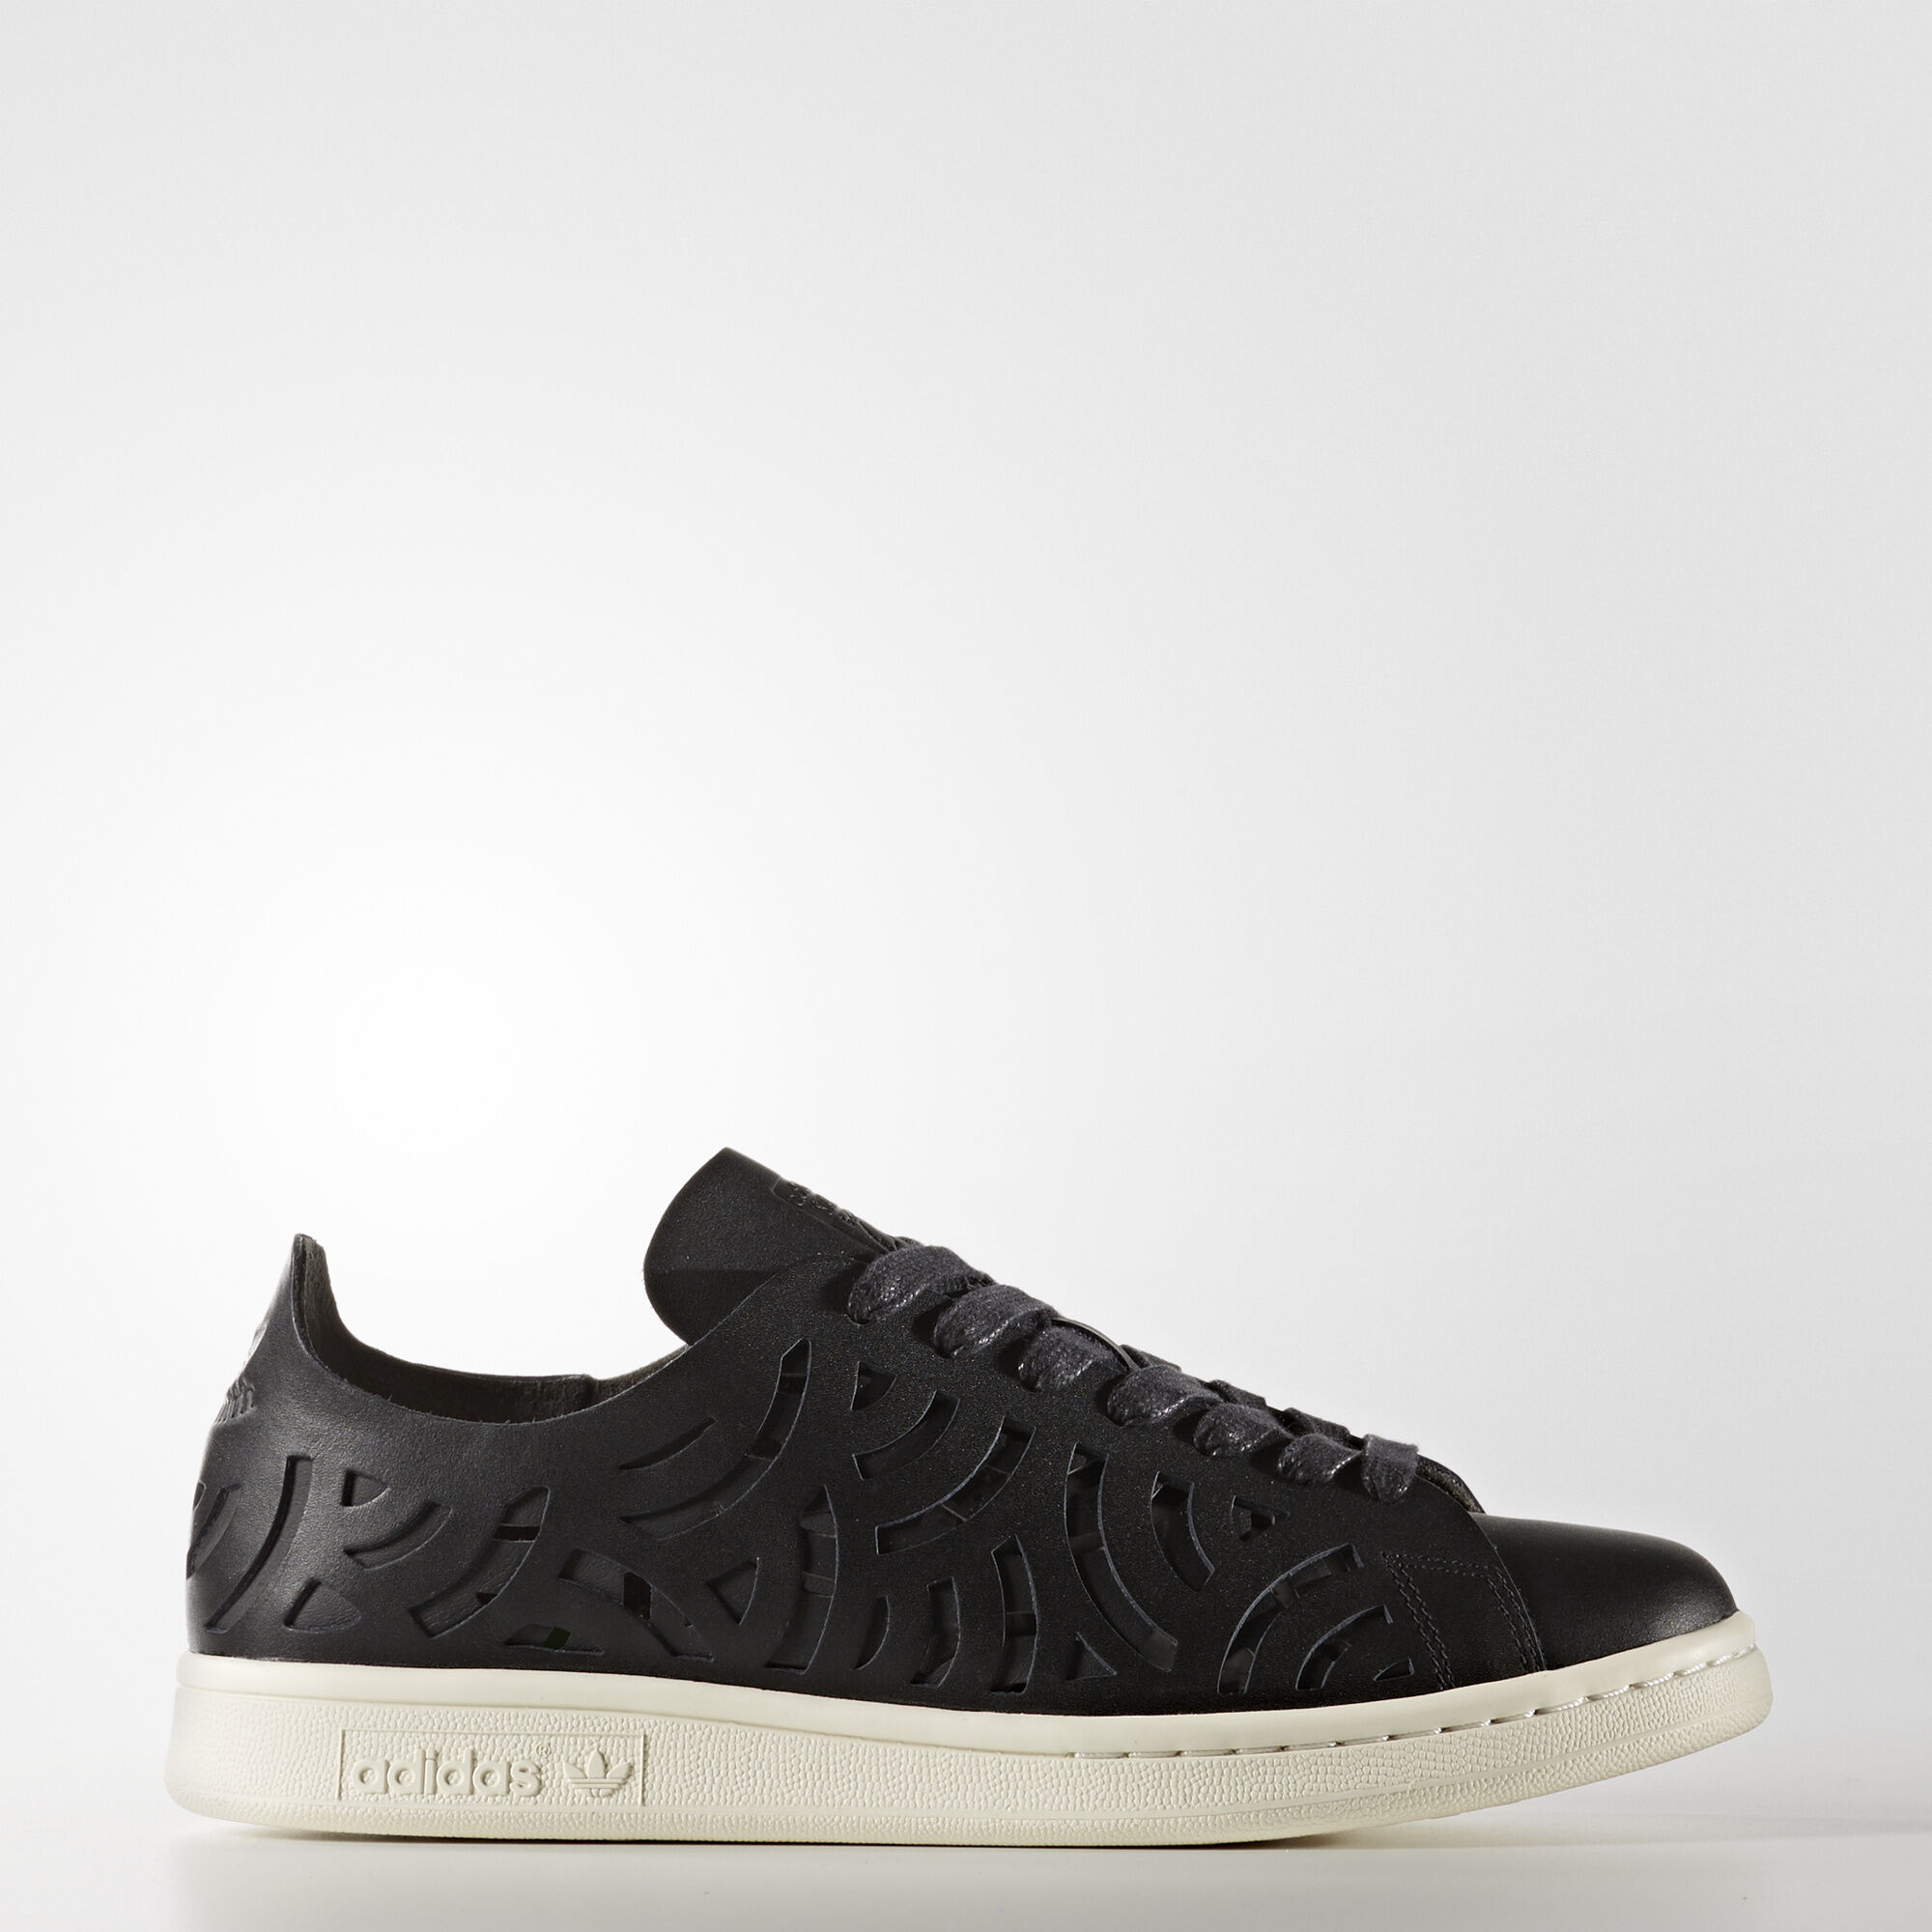 adidas - Stan Smith Cutout Shoes Core Black/Core Black/Off White BY2976